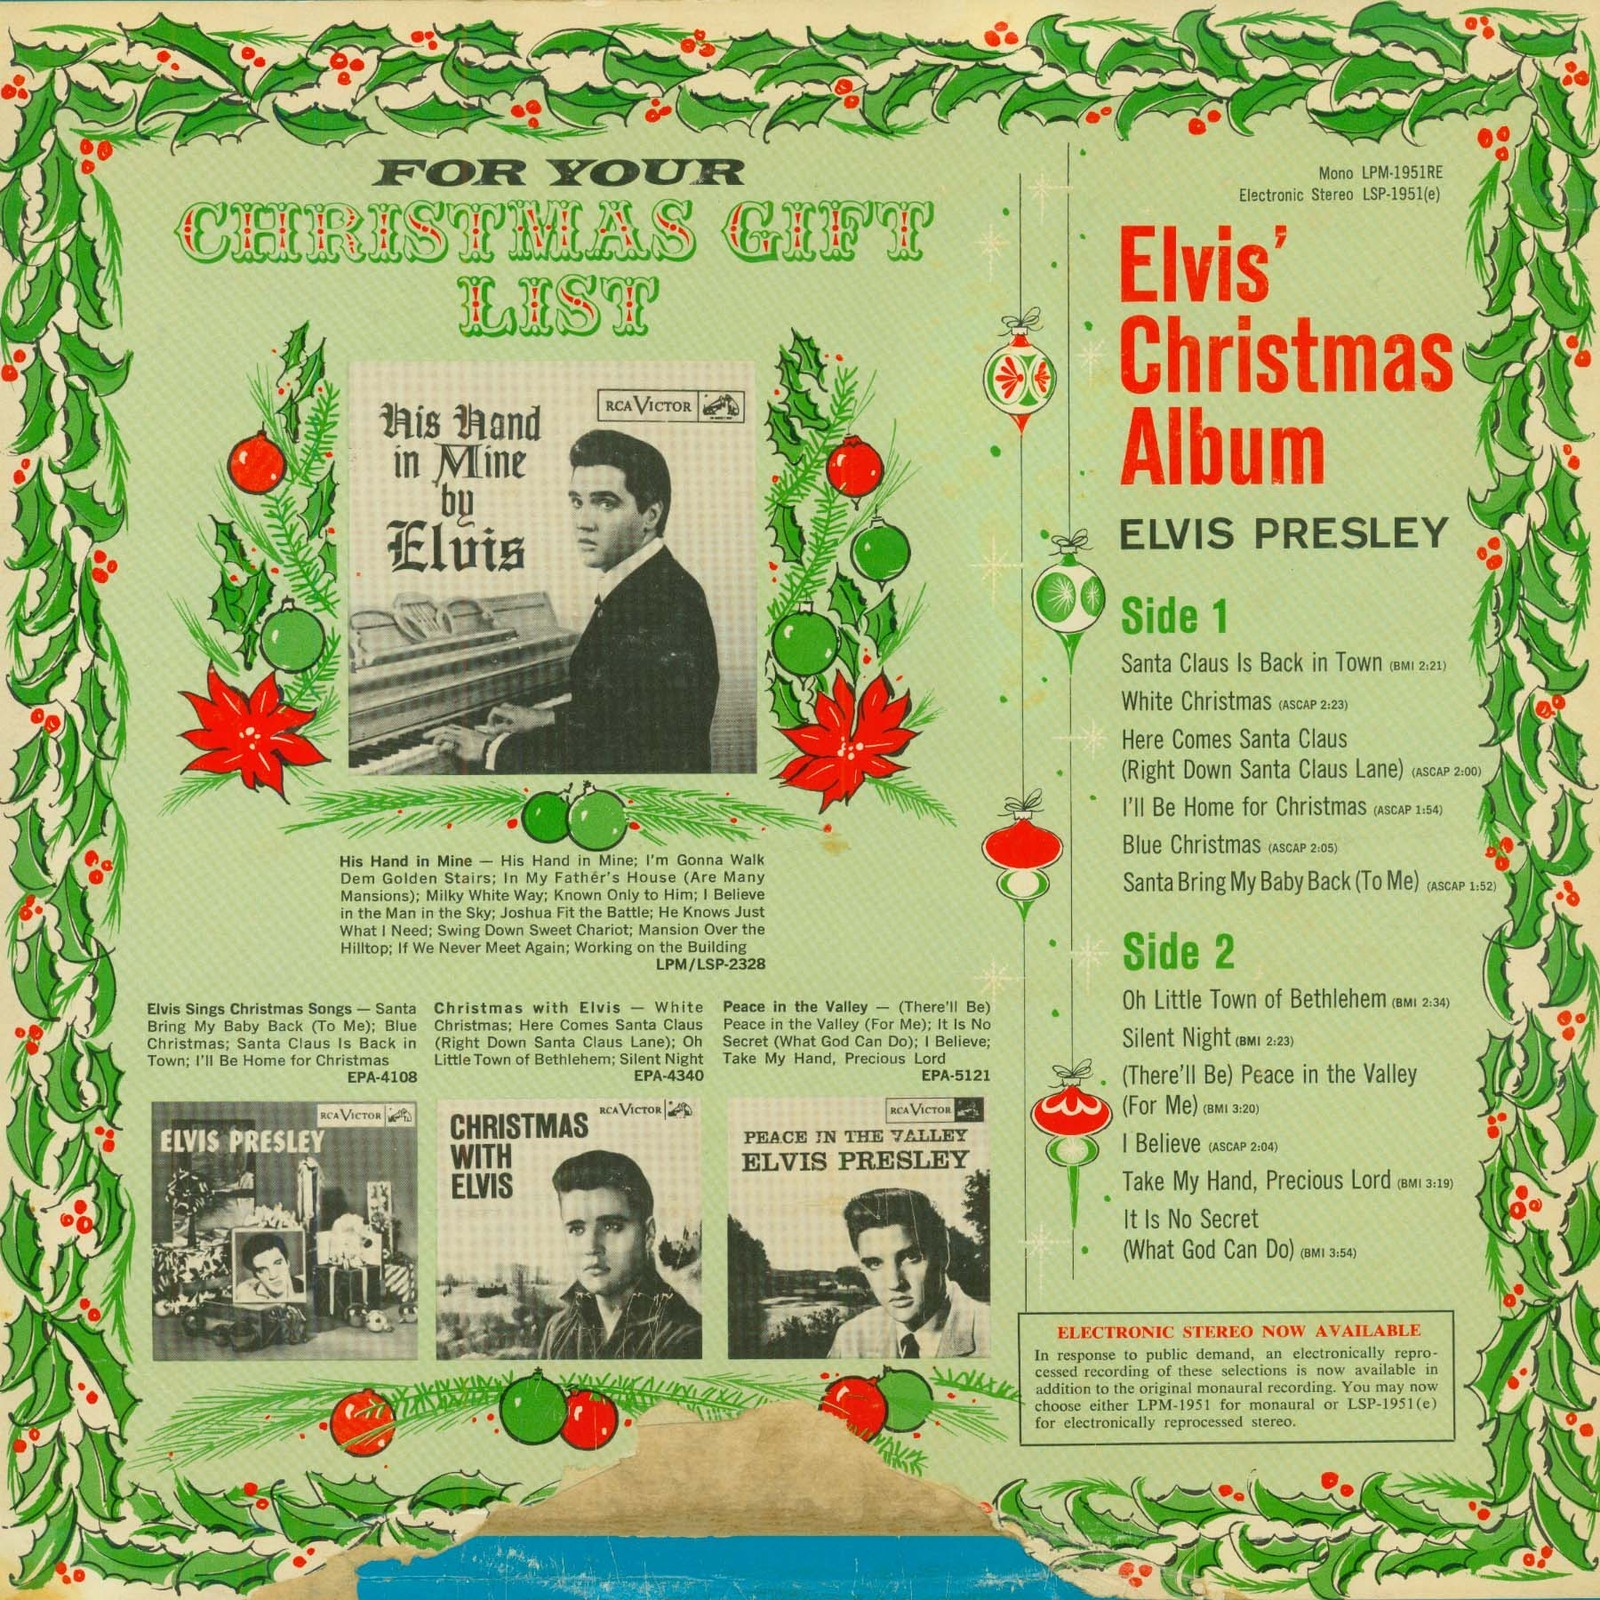 ELVIS' CHRISTMAS ALBUM 02ufypc